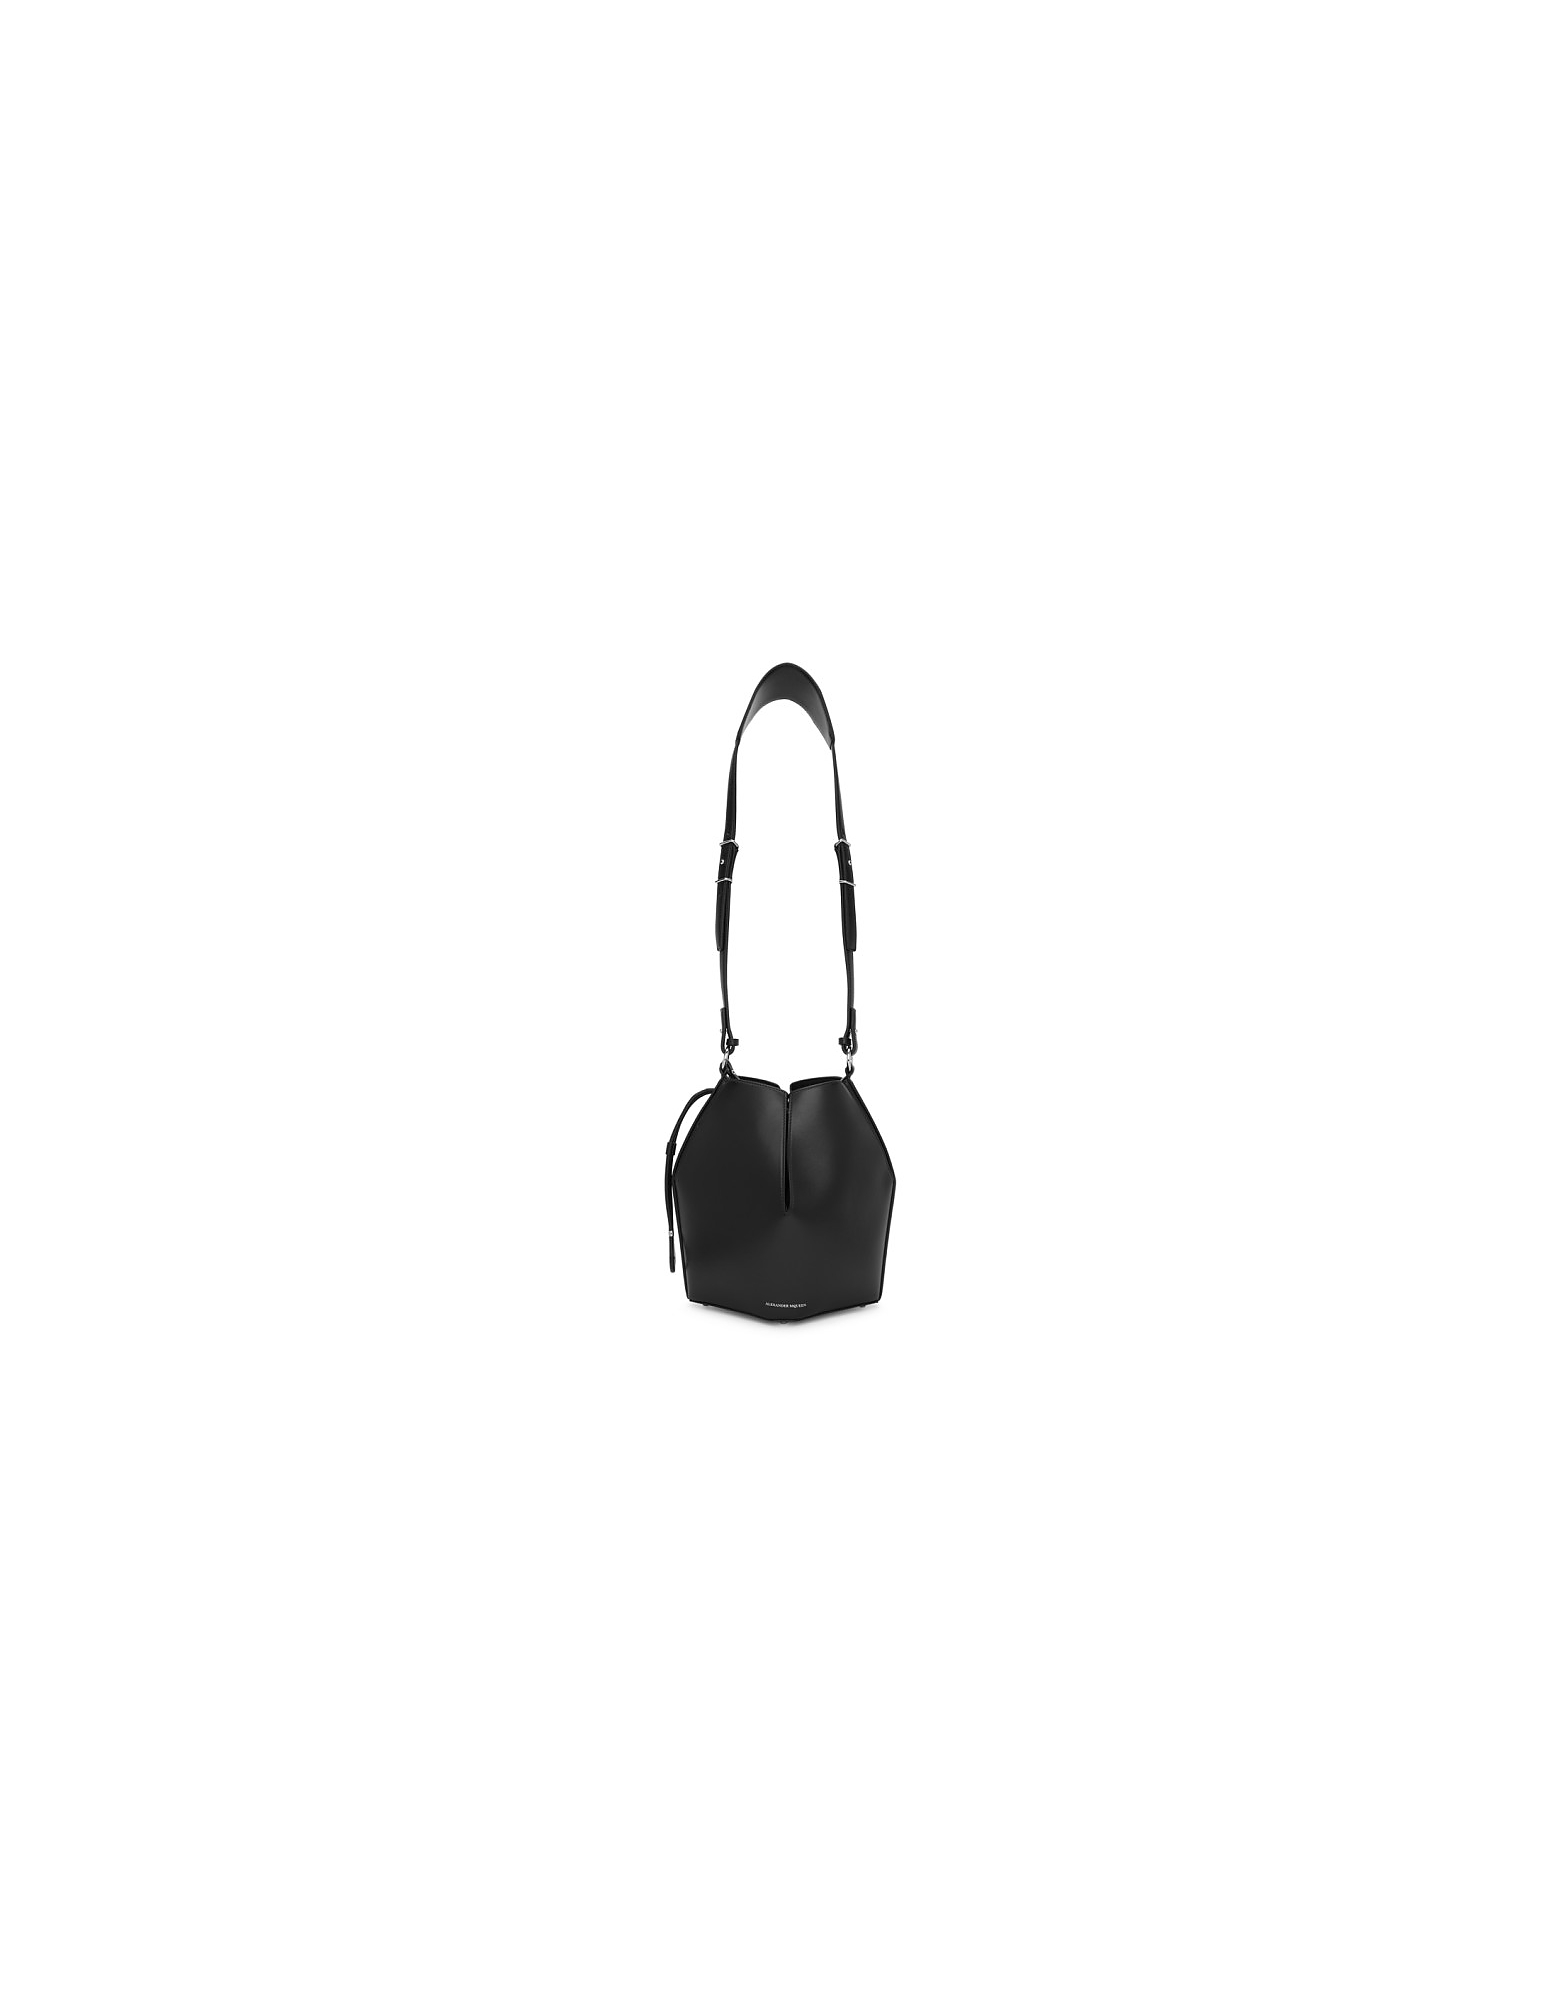 Alexander McQueen Designer Handbags, Black Bucket Shoulder Bag